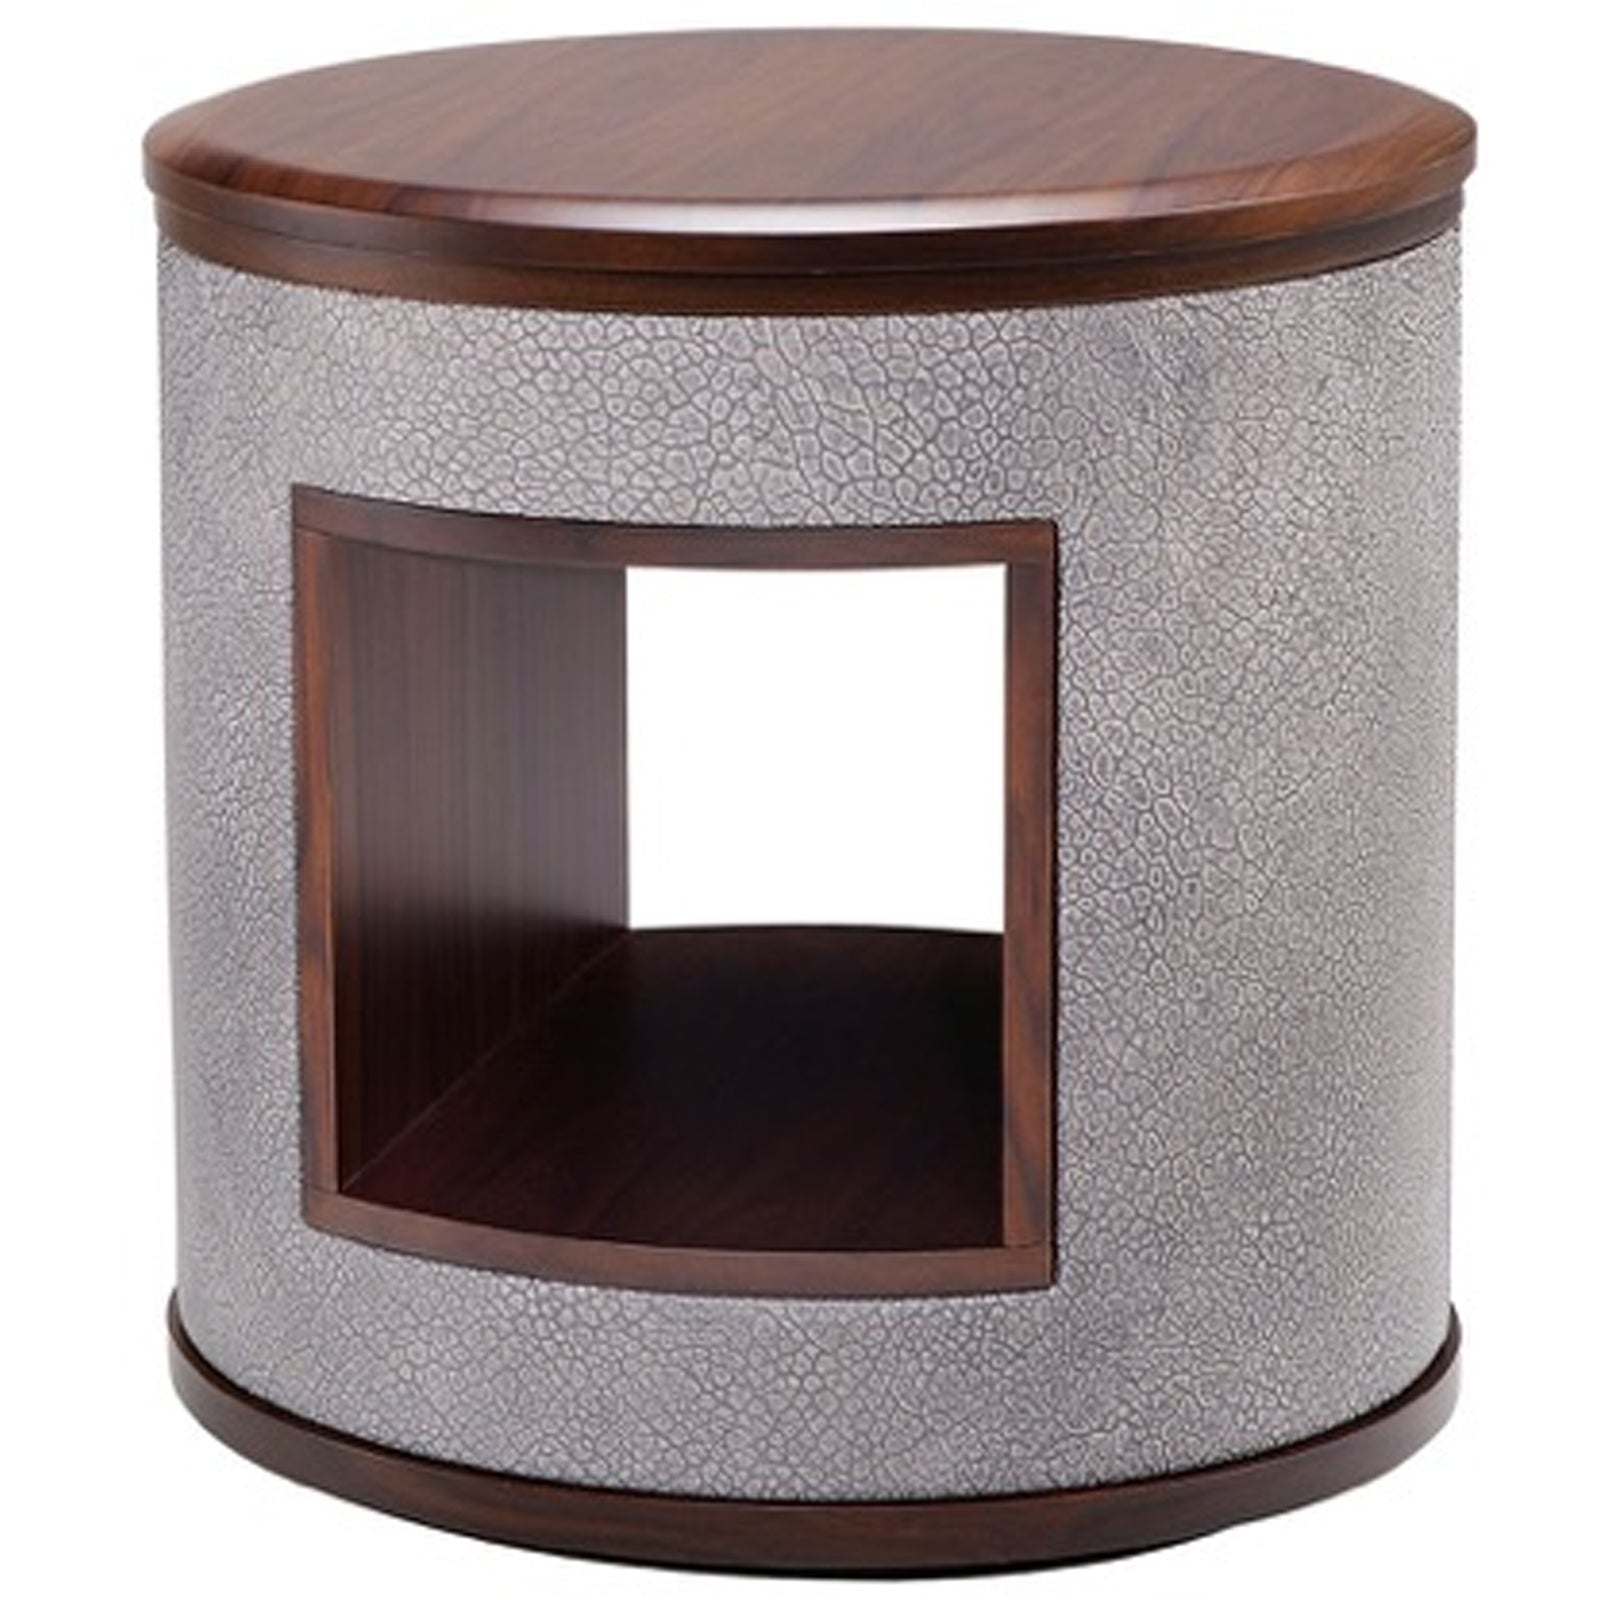 Corinto Side Table